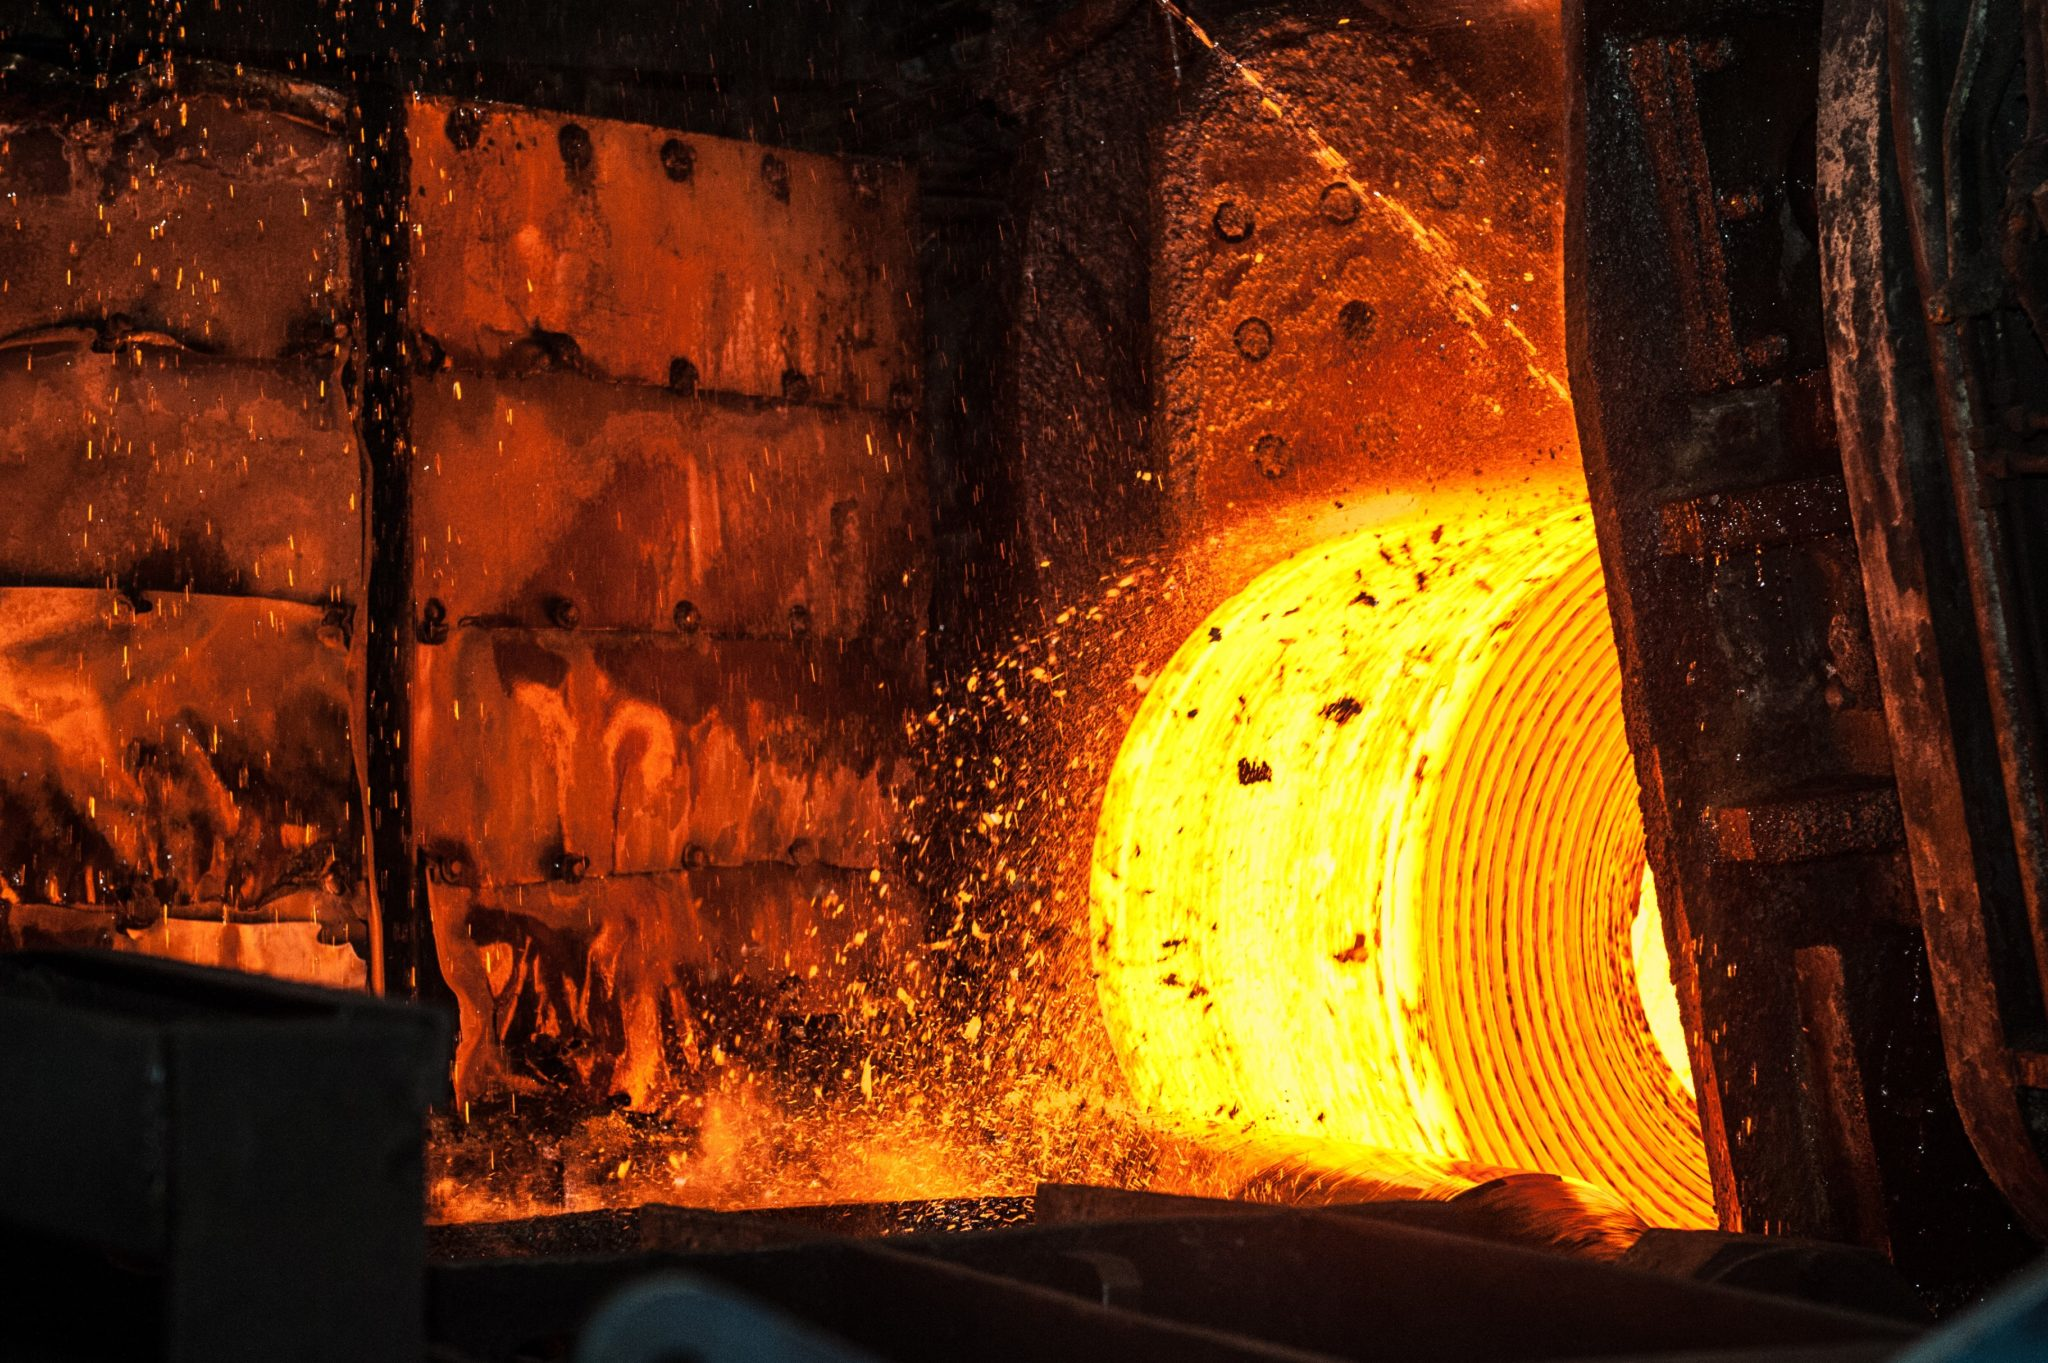 https://www.lone-star.com/wp-content/uploads/2018/01/Smelting-steel-coil.jpg